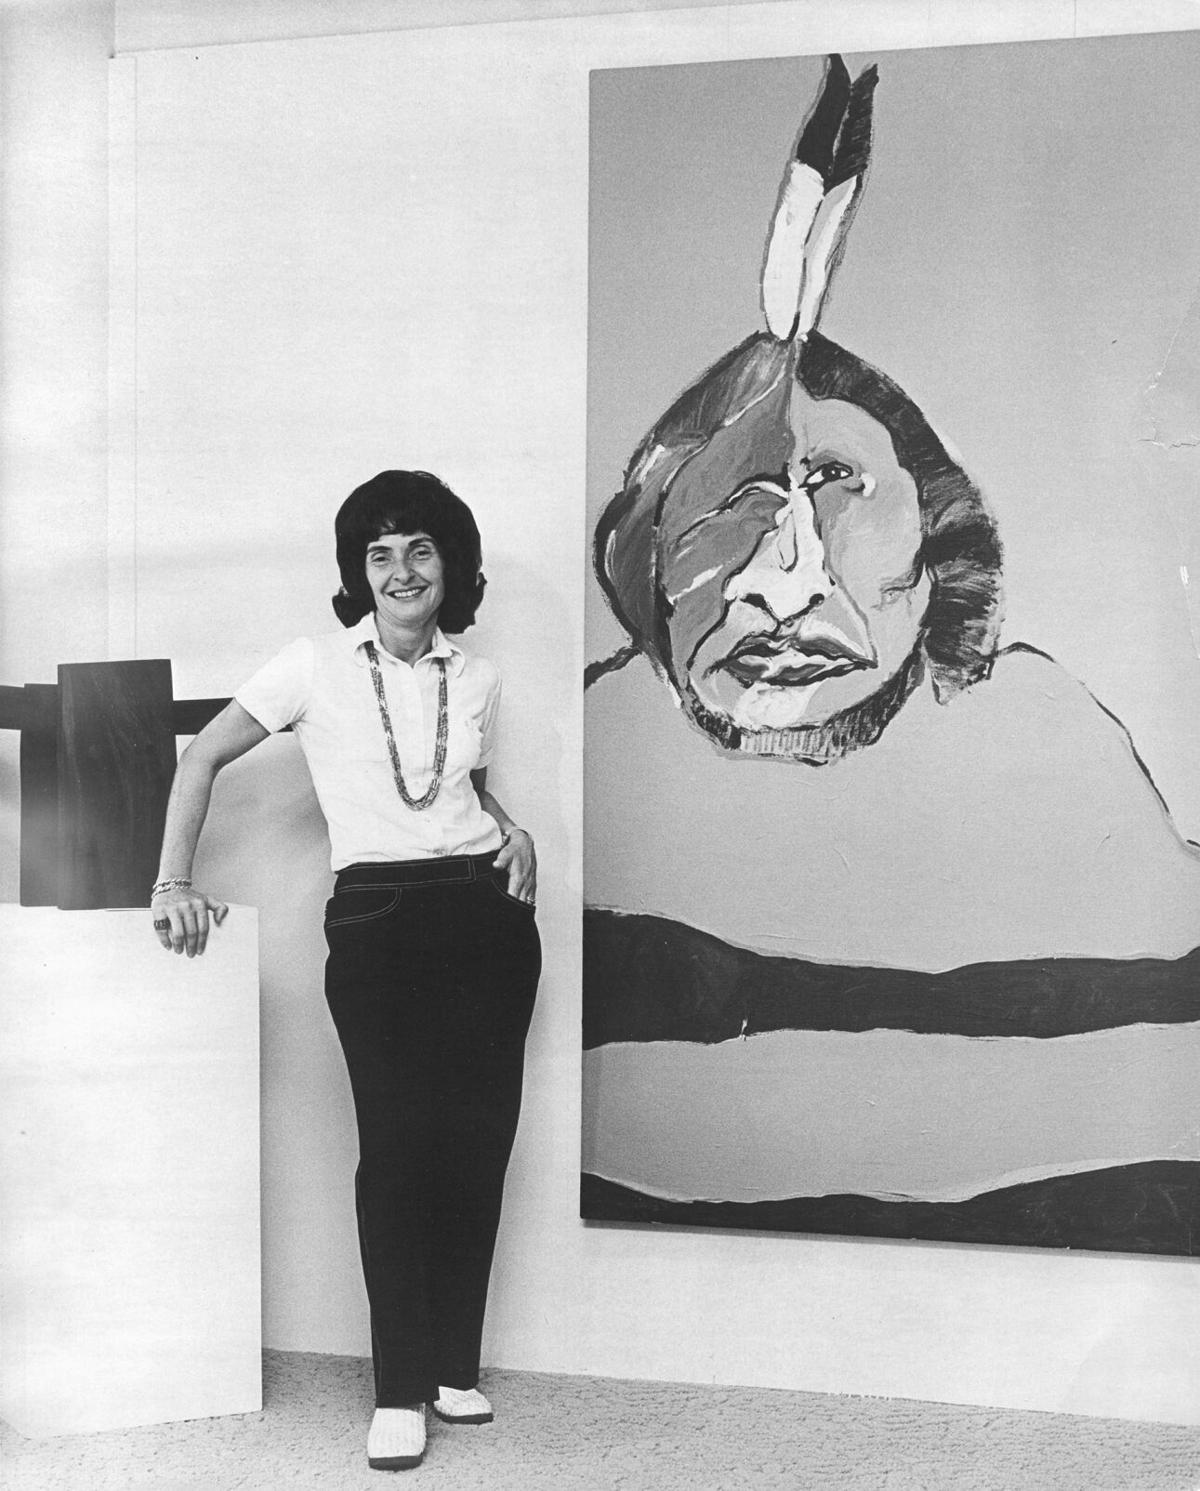 Fortune's favor: Elaine Horwitch and the rise of Southwest art